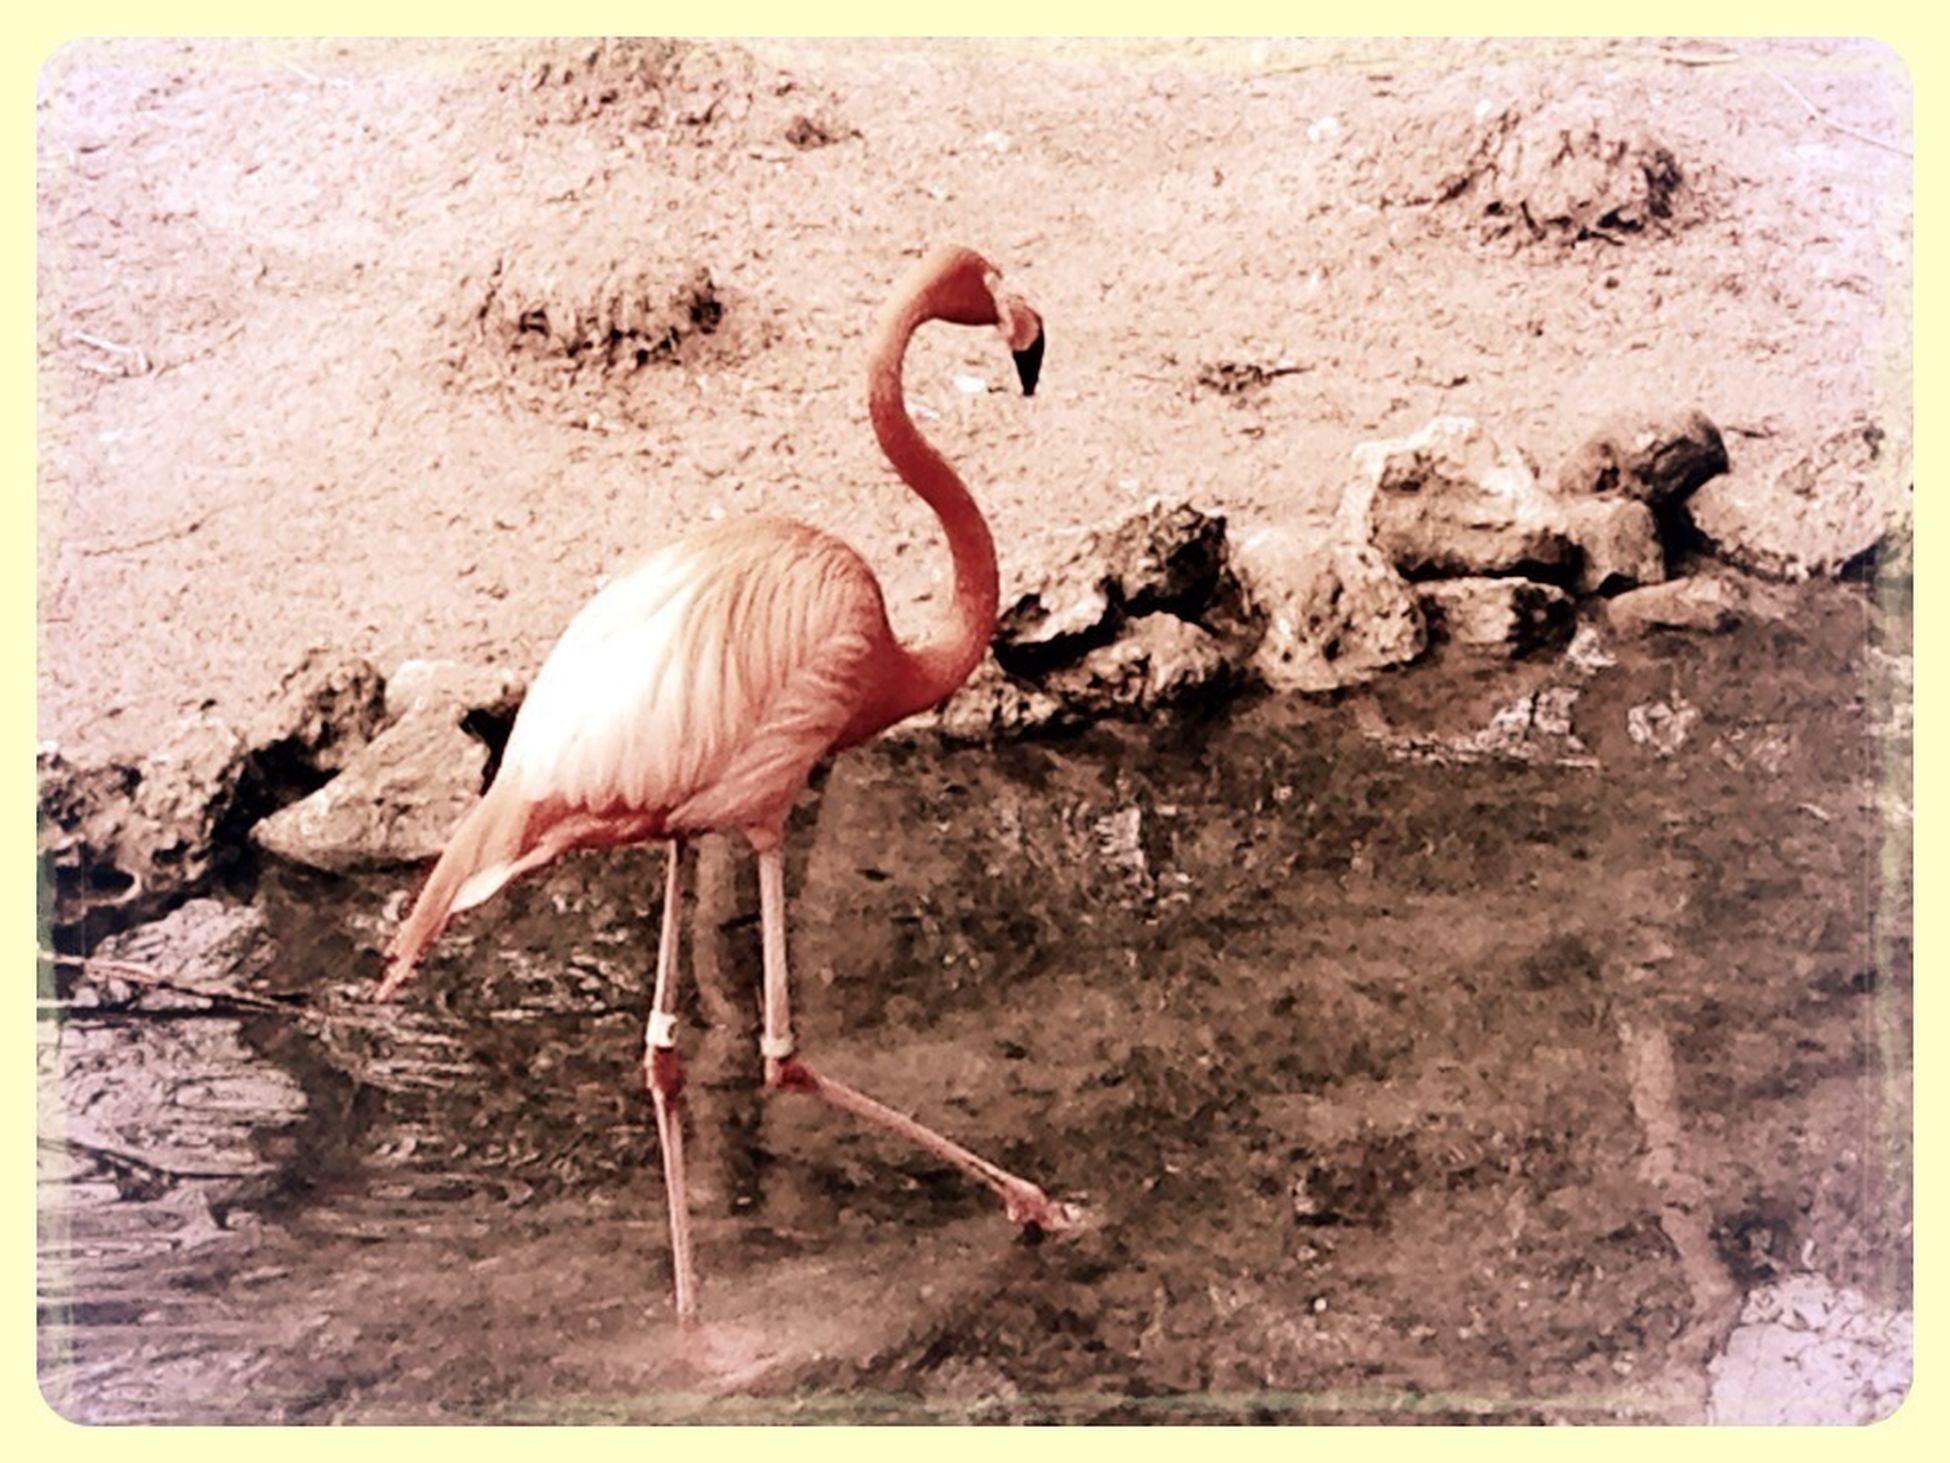 bird, animal themes, wildlife, day, animals in the wild, flamingo, nature, outdoors, one animal, beak, side view, focus on foreground, textured, no people, bird, flamingo, Platalea, spoonbill, freshwater, beak, birds, egg-laying, animal, vertebrate, snake, reptile, zoology, arid climate, carefree, relaxation, recreational pursuit